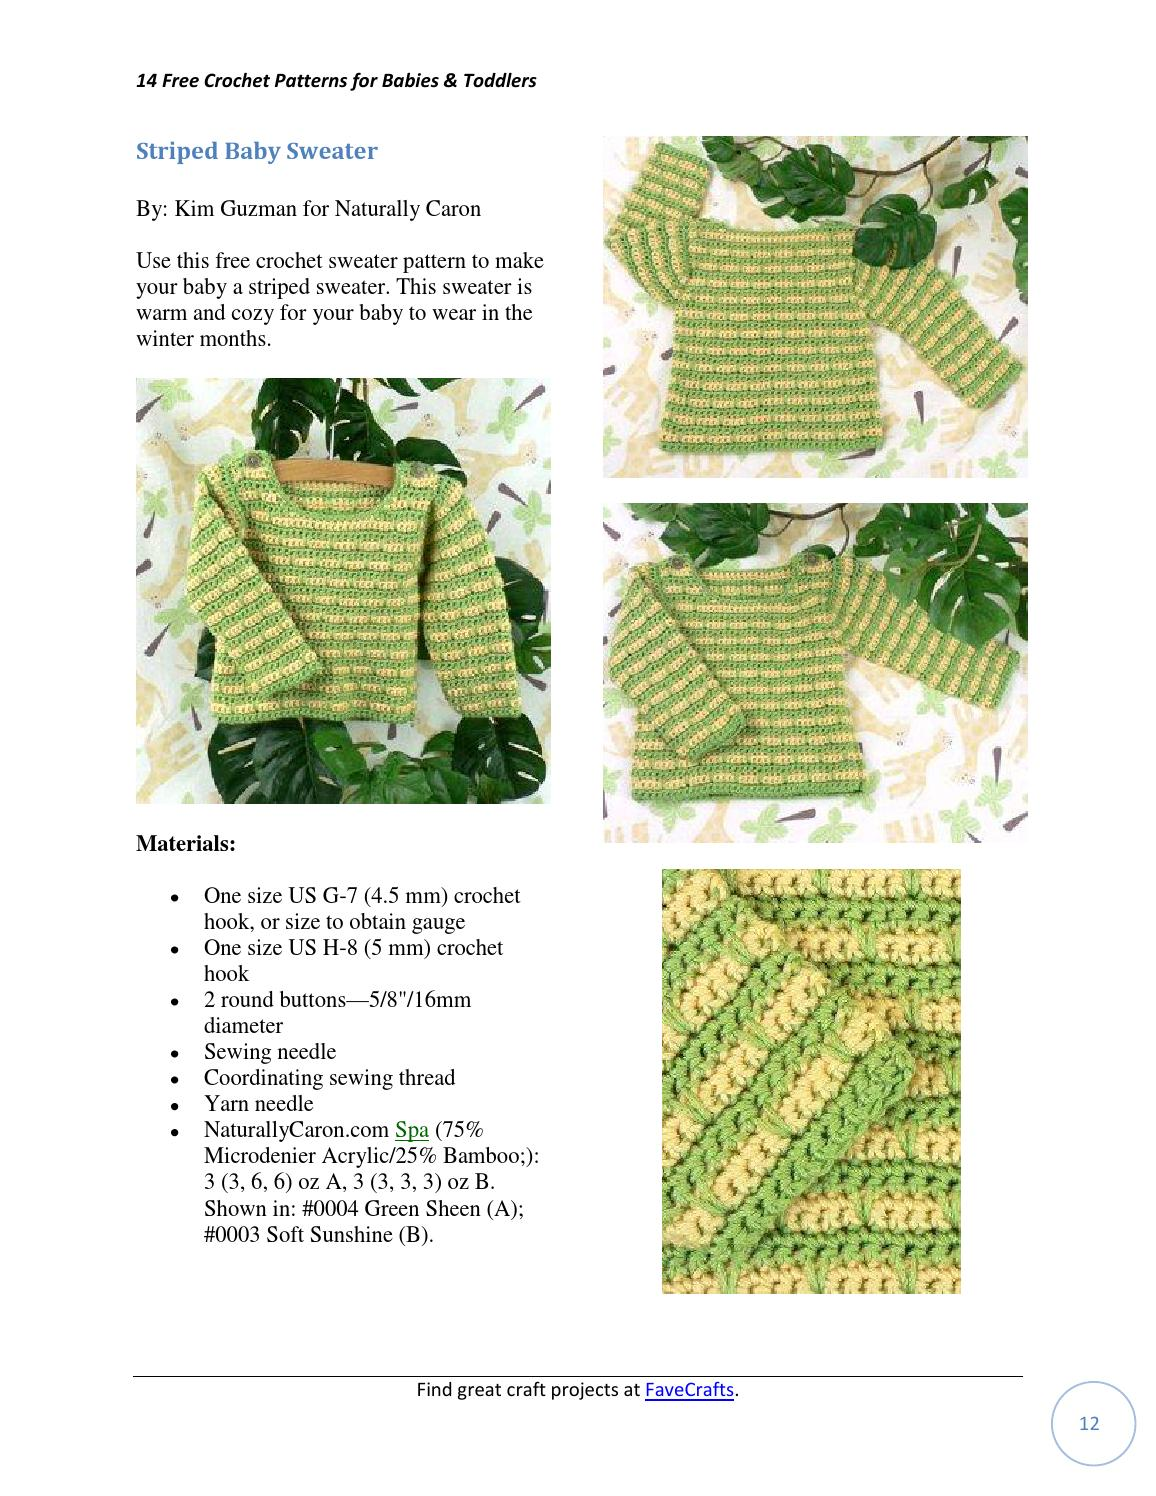 14 free crochet patterns for babies toddlers ebook by Valérie Brunet ...